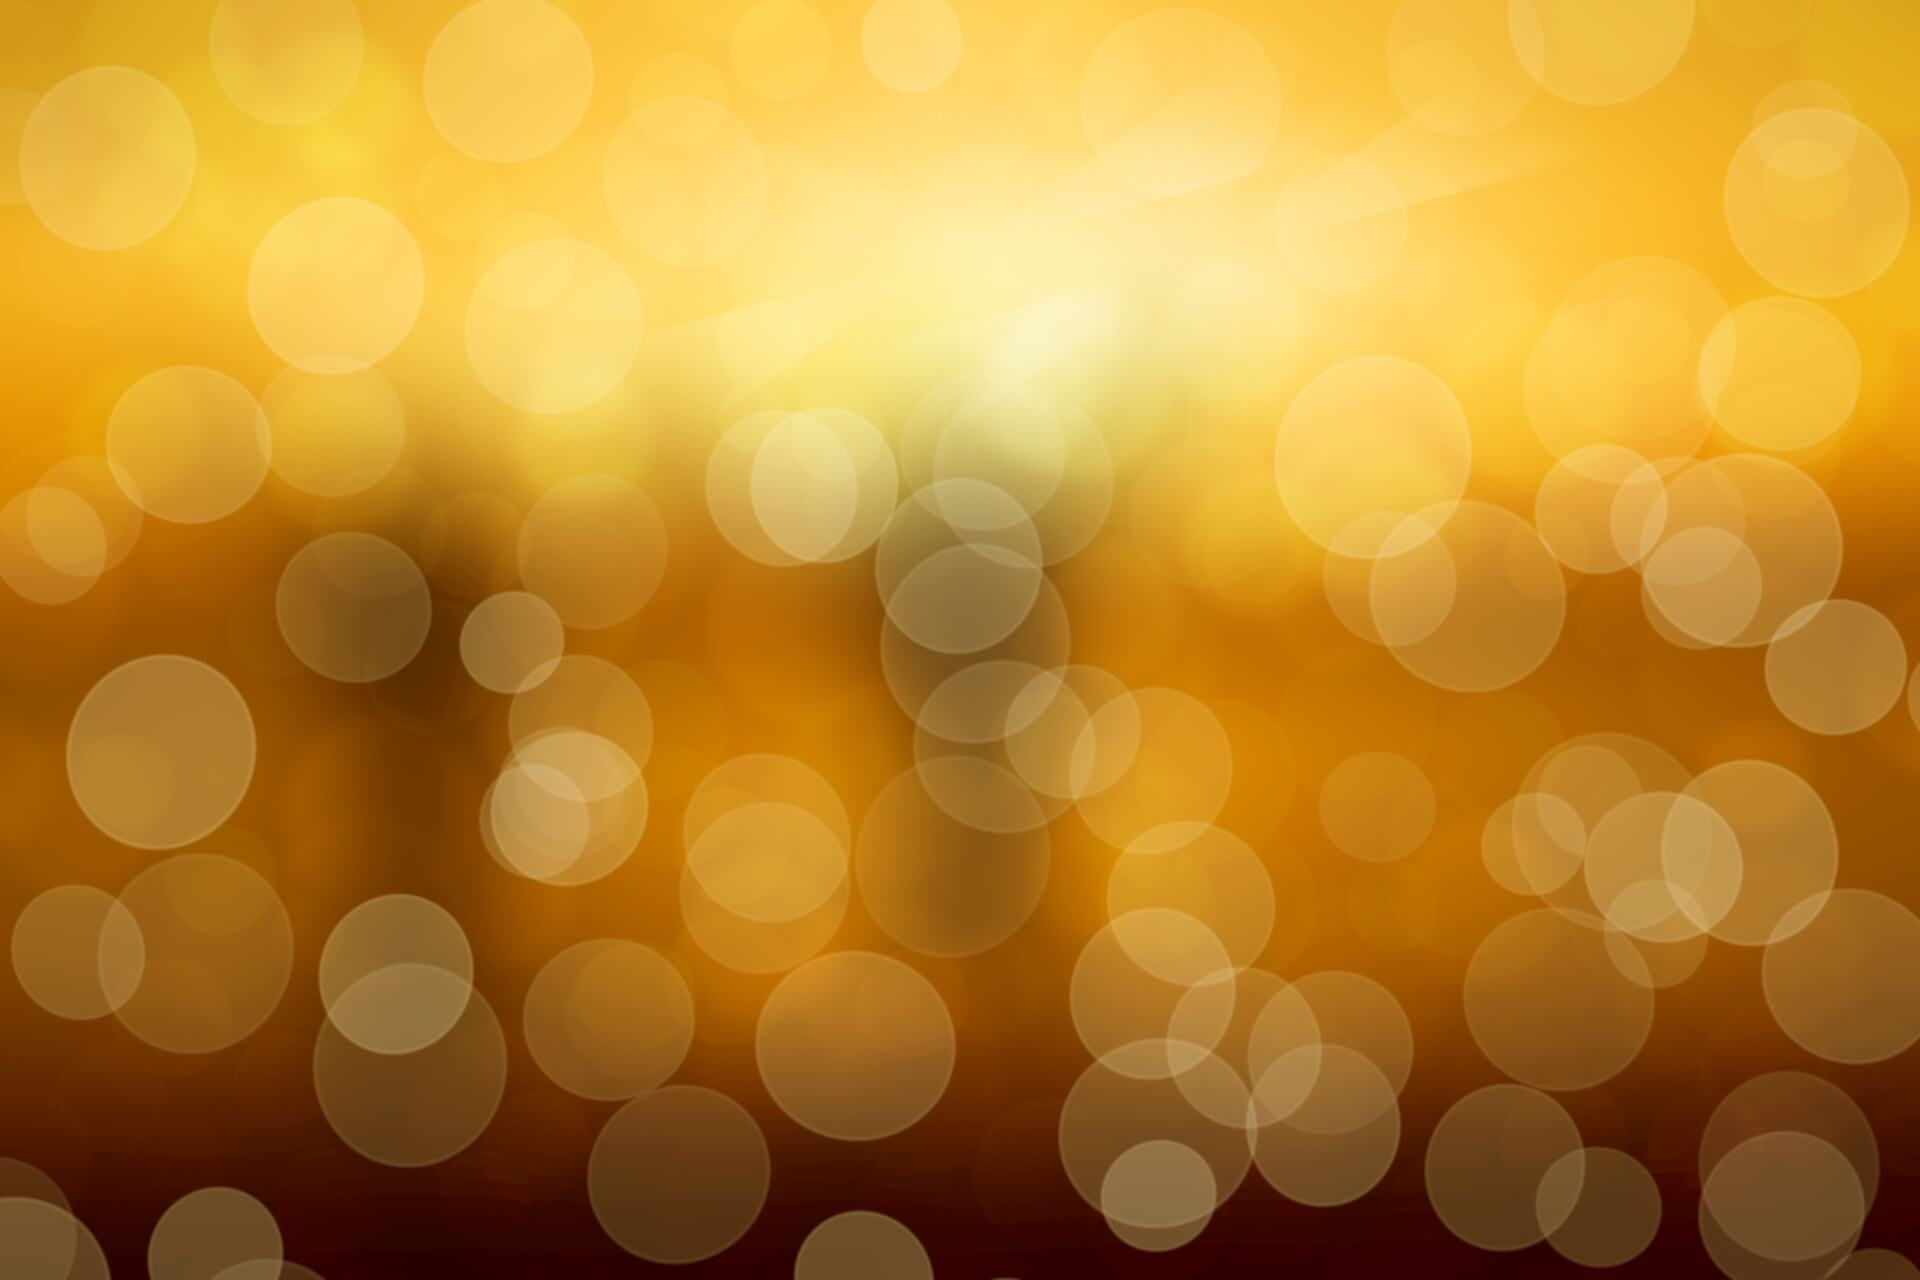 bokeh-luz-brillo-luces